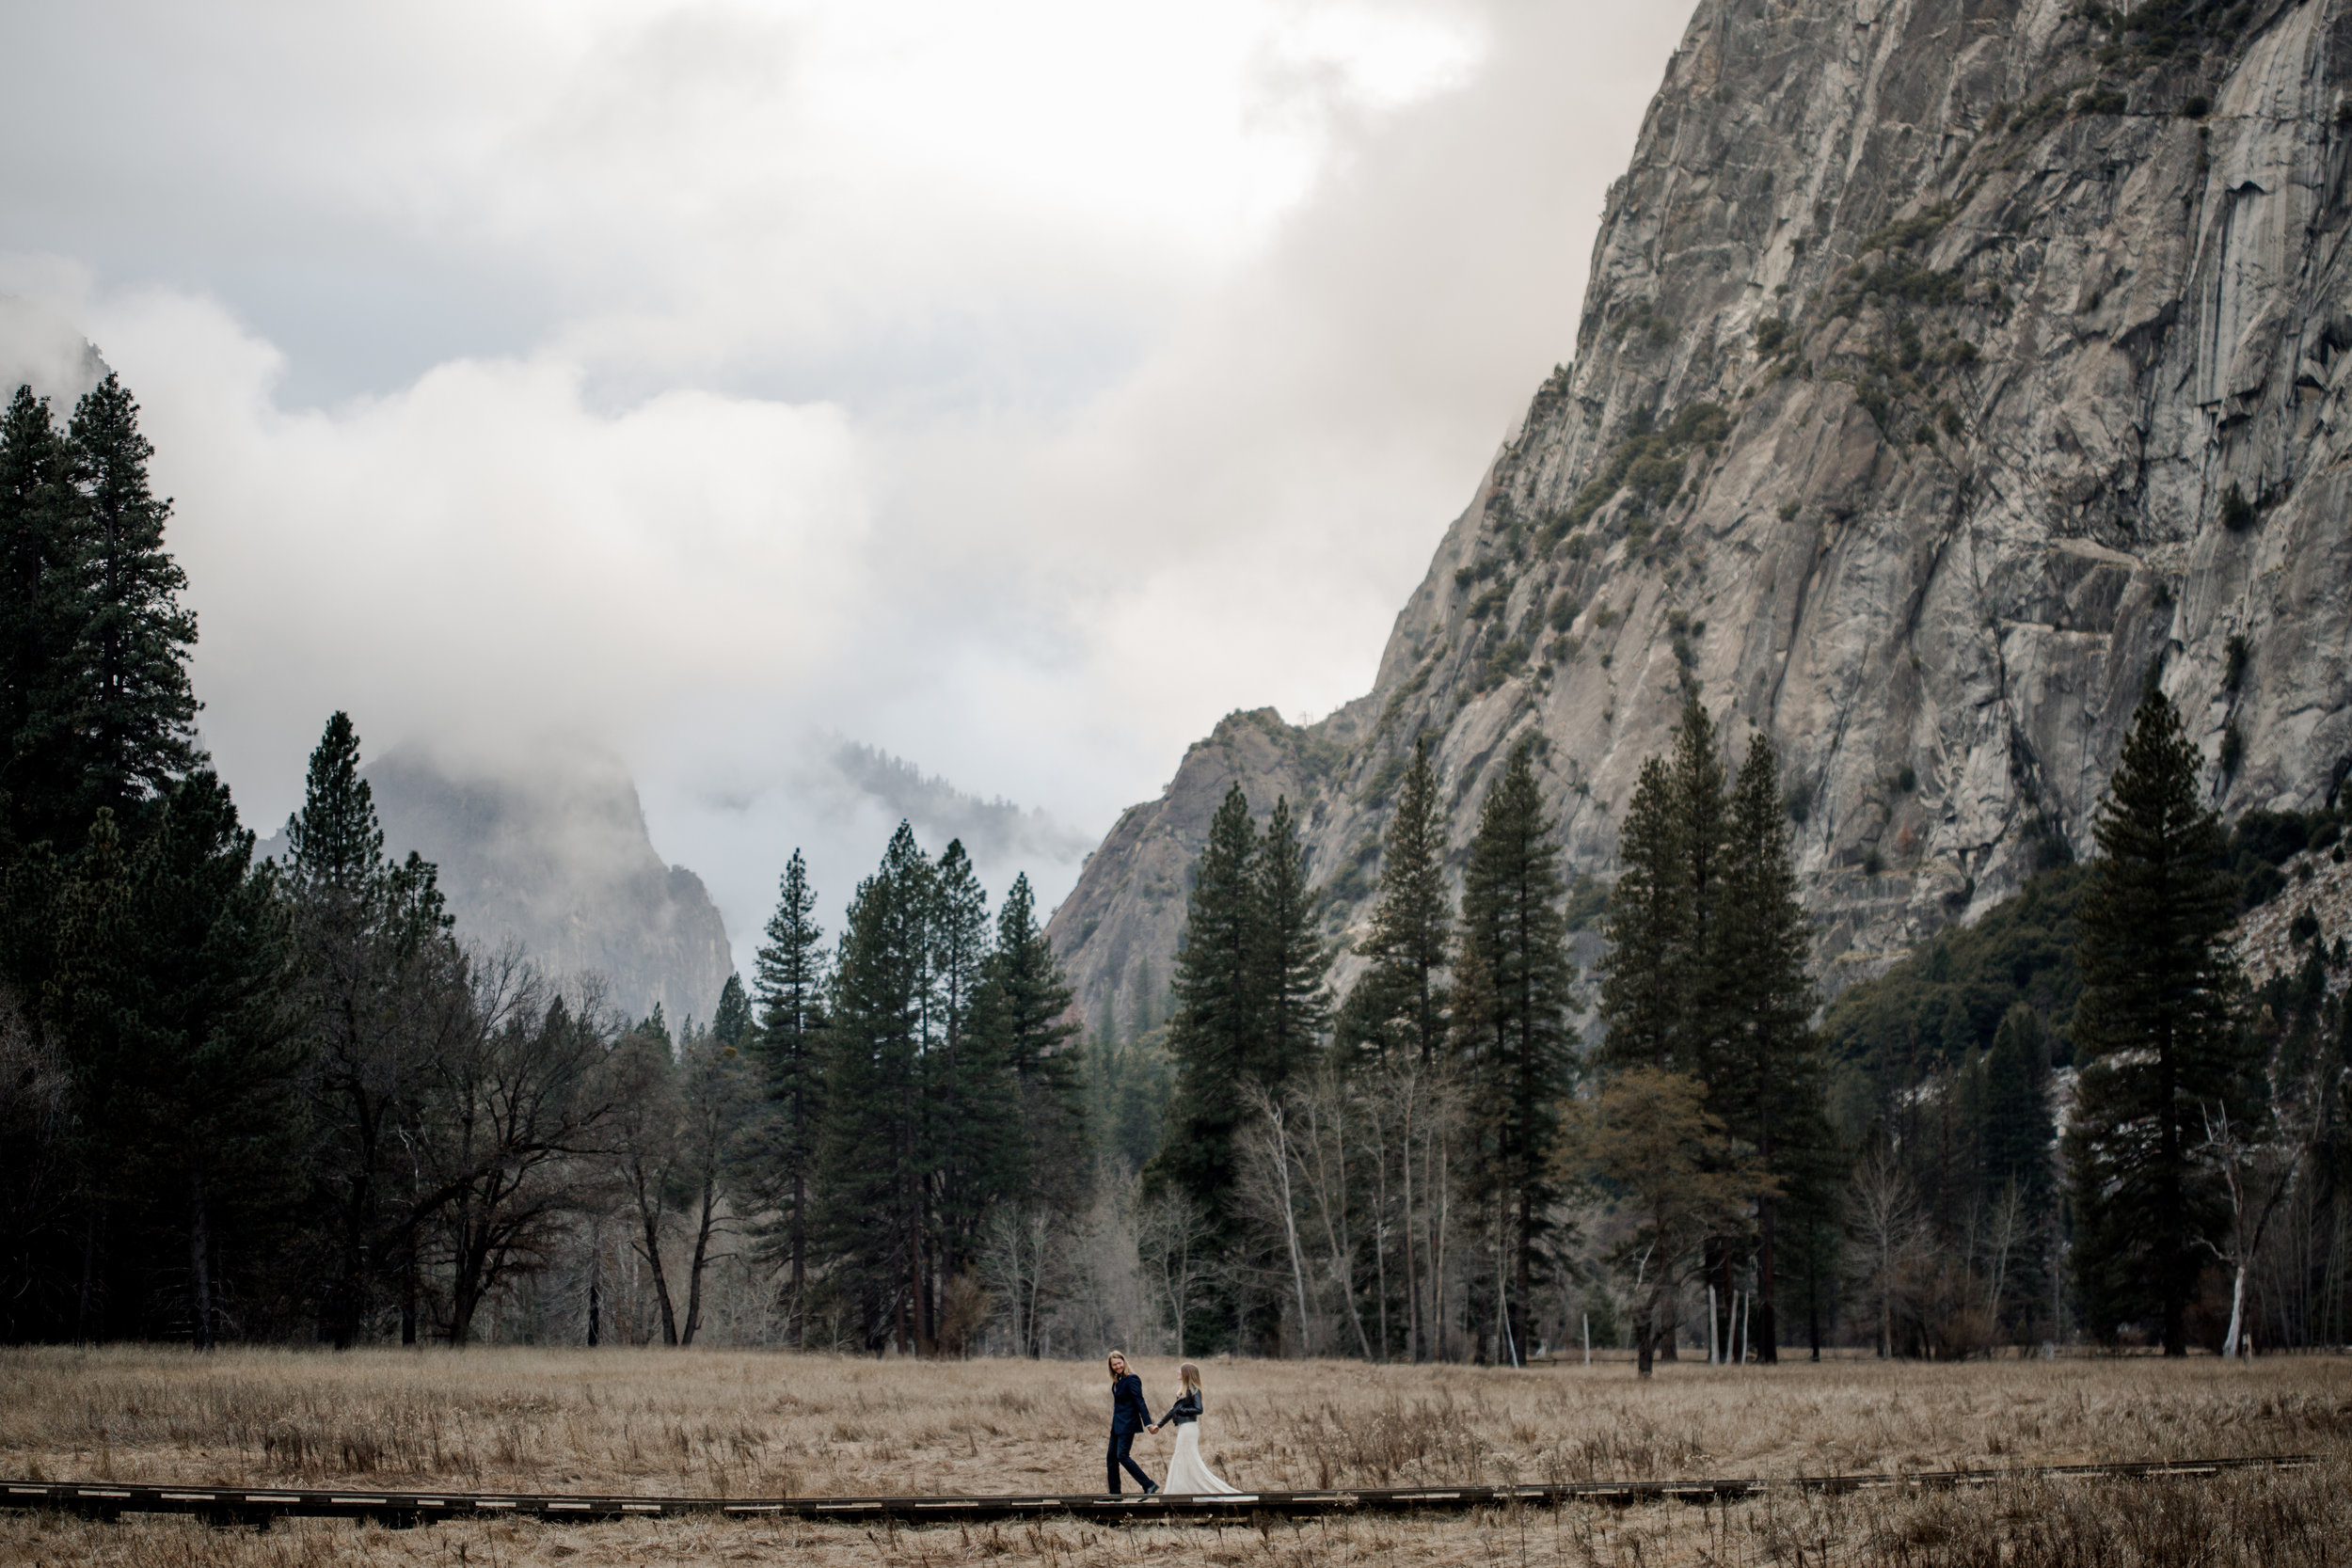 nicole-daacke-photography-yousemite-national-park-elopement-photographer-winter-cloud-moody-elope-inspiration-yosemite-valley-tunnel-view-winter-cloud-fog-weather-wedding-photos-88.jpg